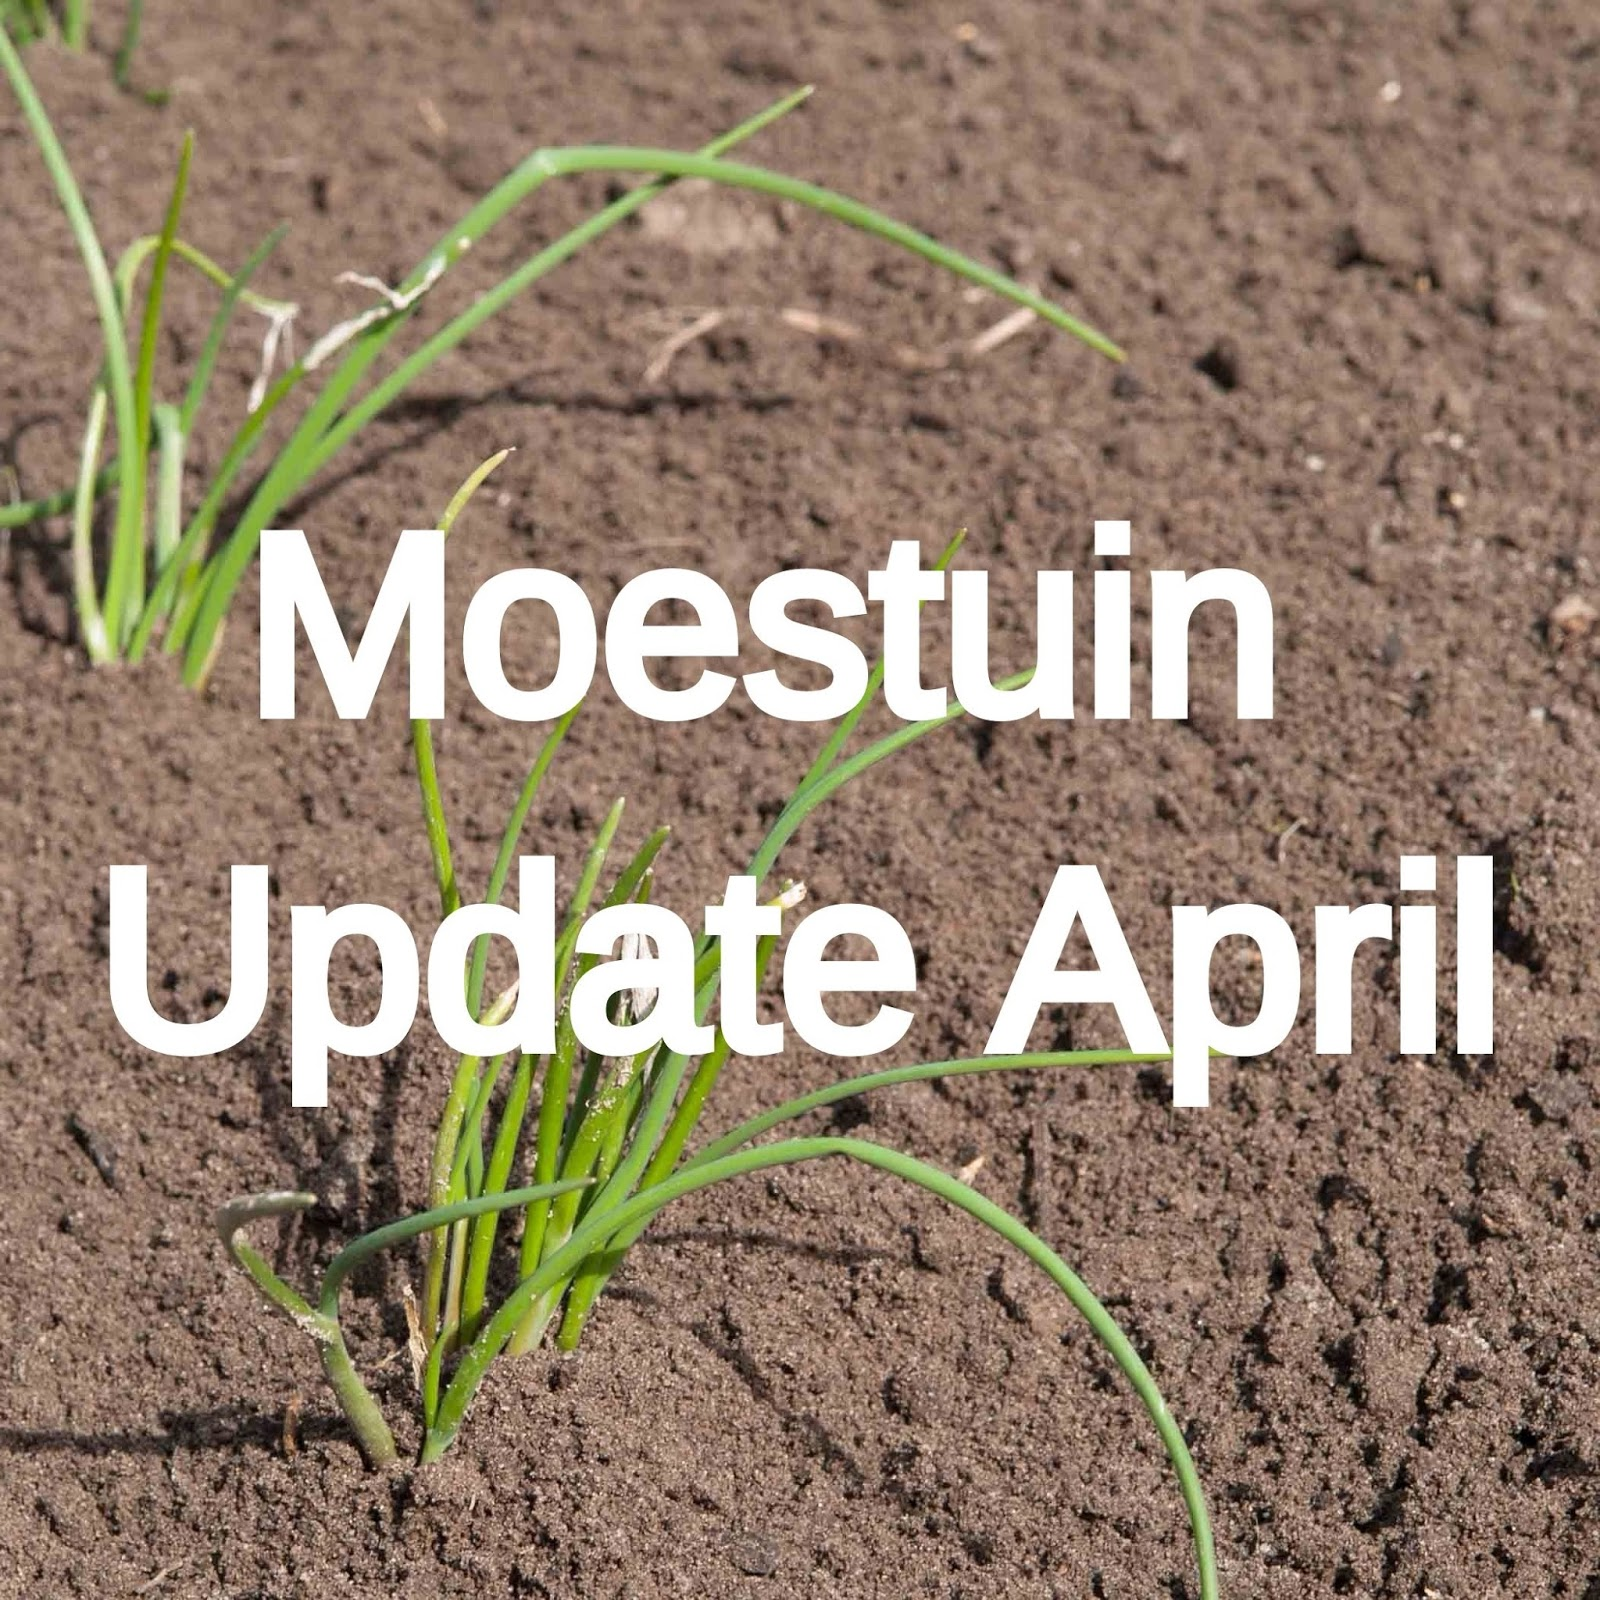 moestuin volkstuin update april